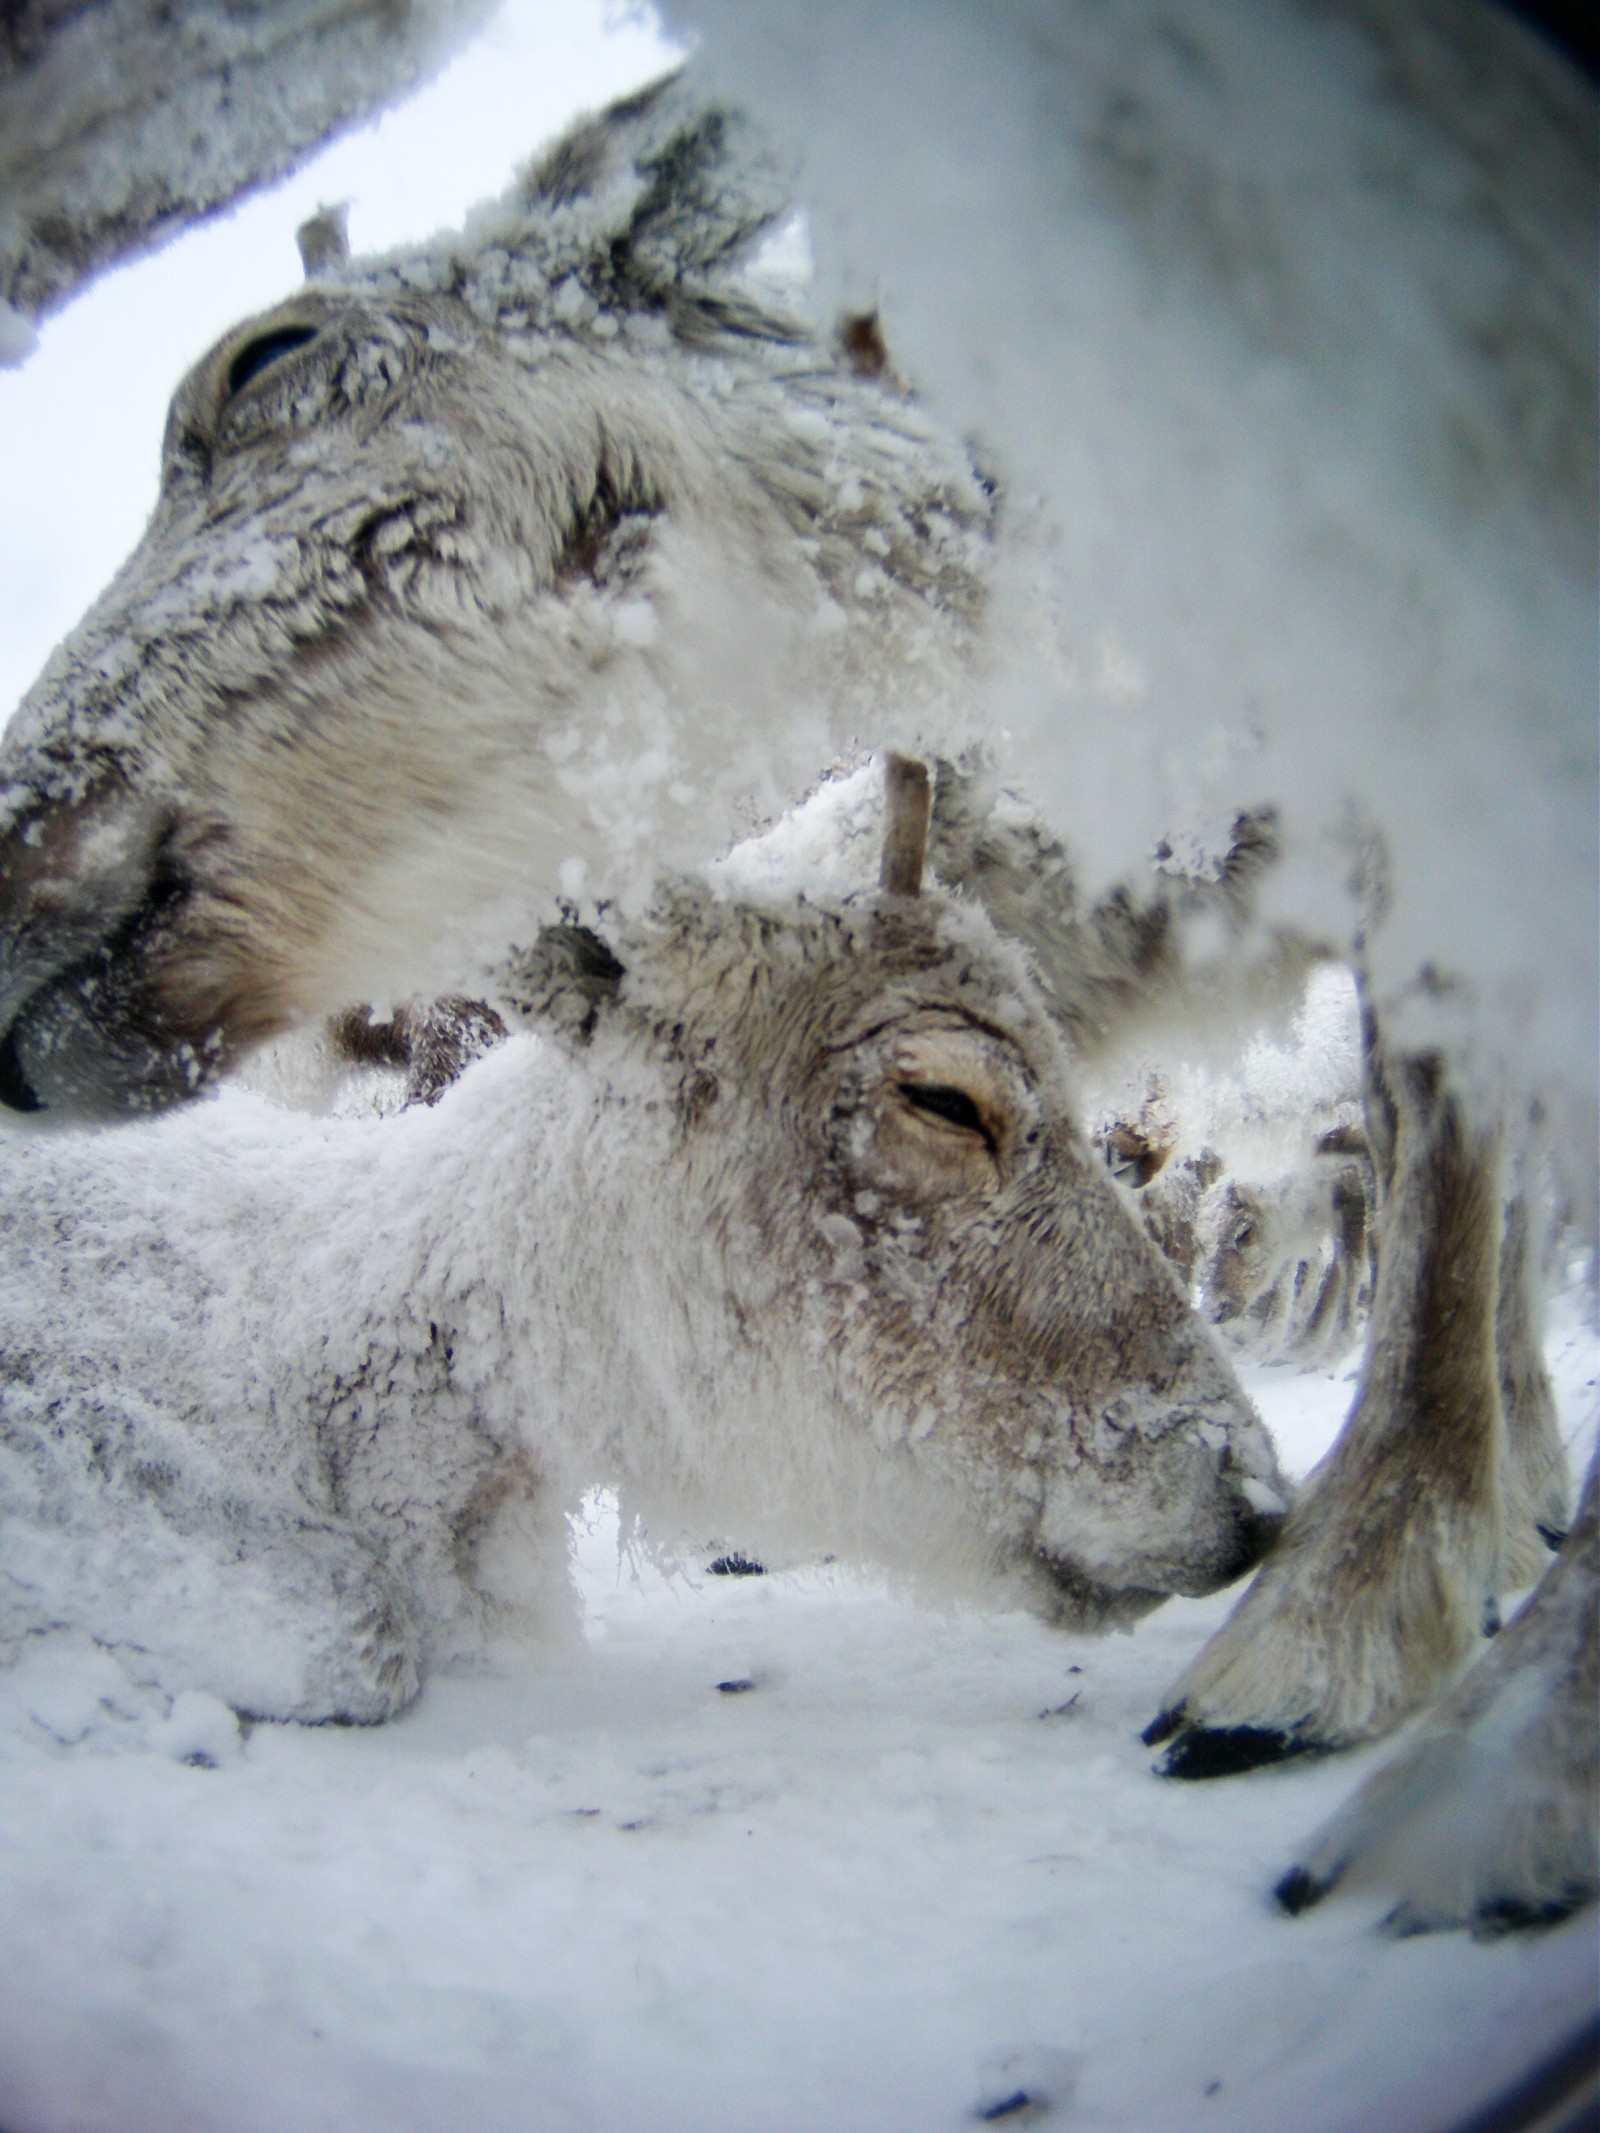 The picture shows two reindeer lying down in a snowstorm.